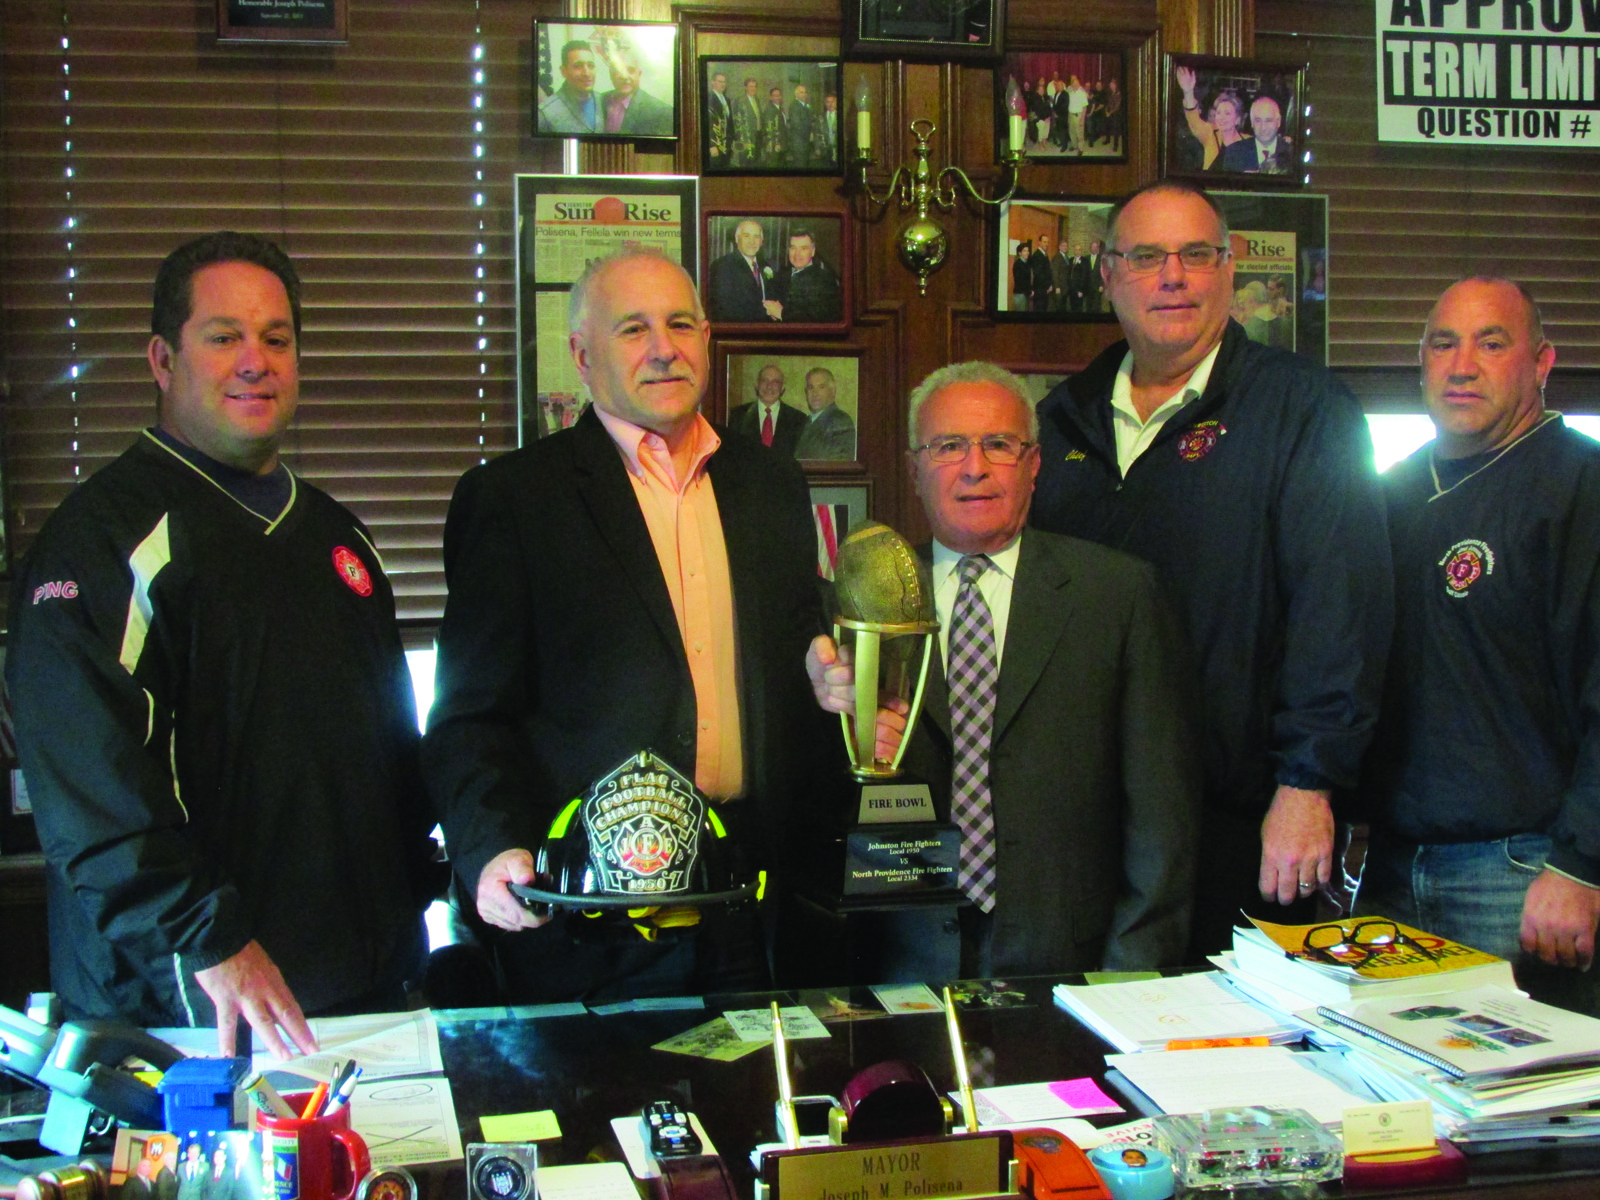 TRAVELING TROPHY: The Fire Bowl trophy is currently in the possession of the North Providence Fire Fighters Local 2334, but Johnston�s Local 1950 hopes to take it home after next Thursday night�s game. Taking part in Tuesday�s announcement were, from left, Johnston coach Dave Pingitore and Mayor Joseph Polisena, North Providence Mayor Charles Lombardi, Johnston Fire Chief Timothy McLaughlin, and North Providence coach Anthony Rampone.